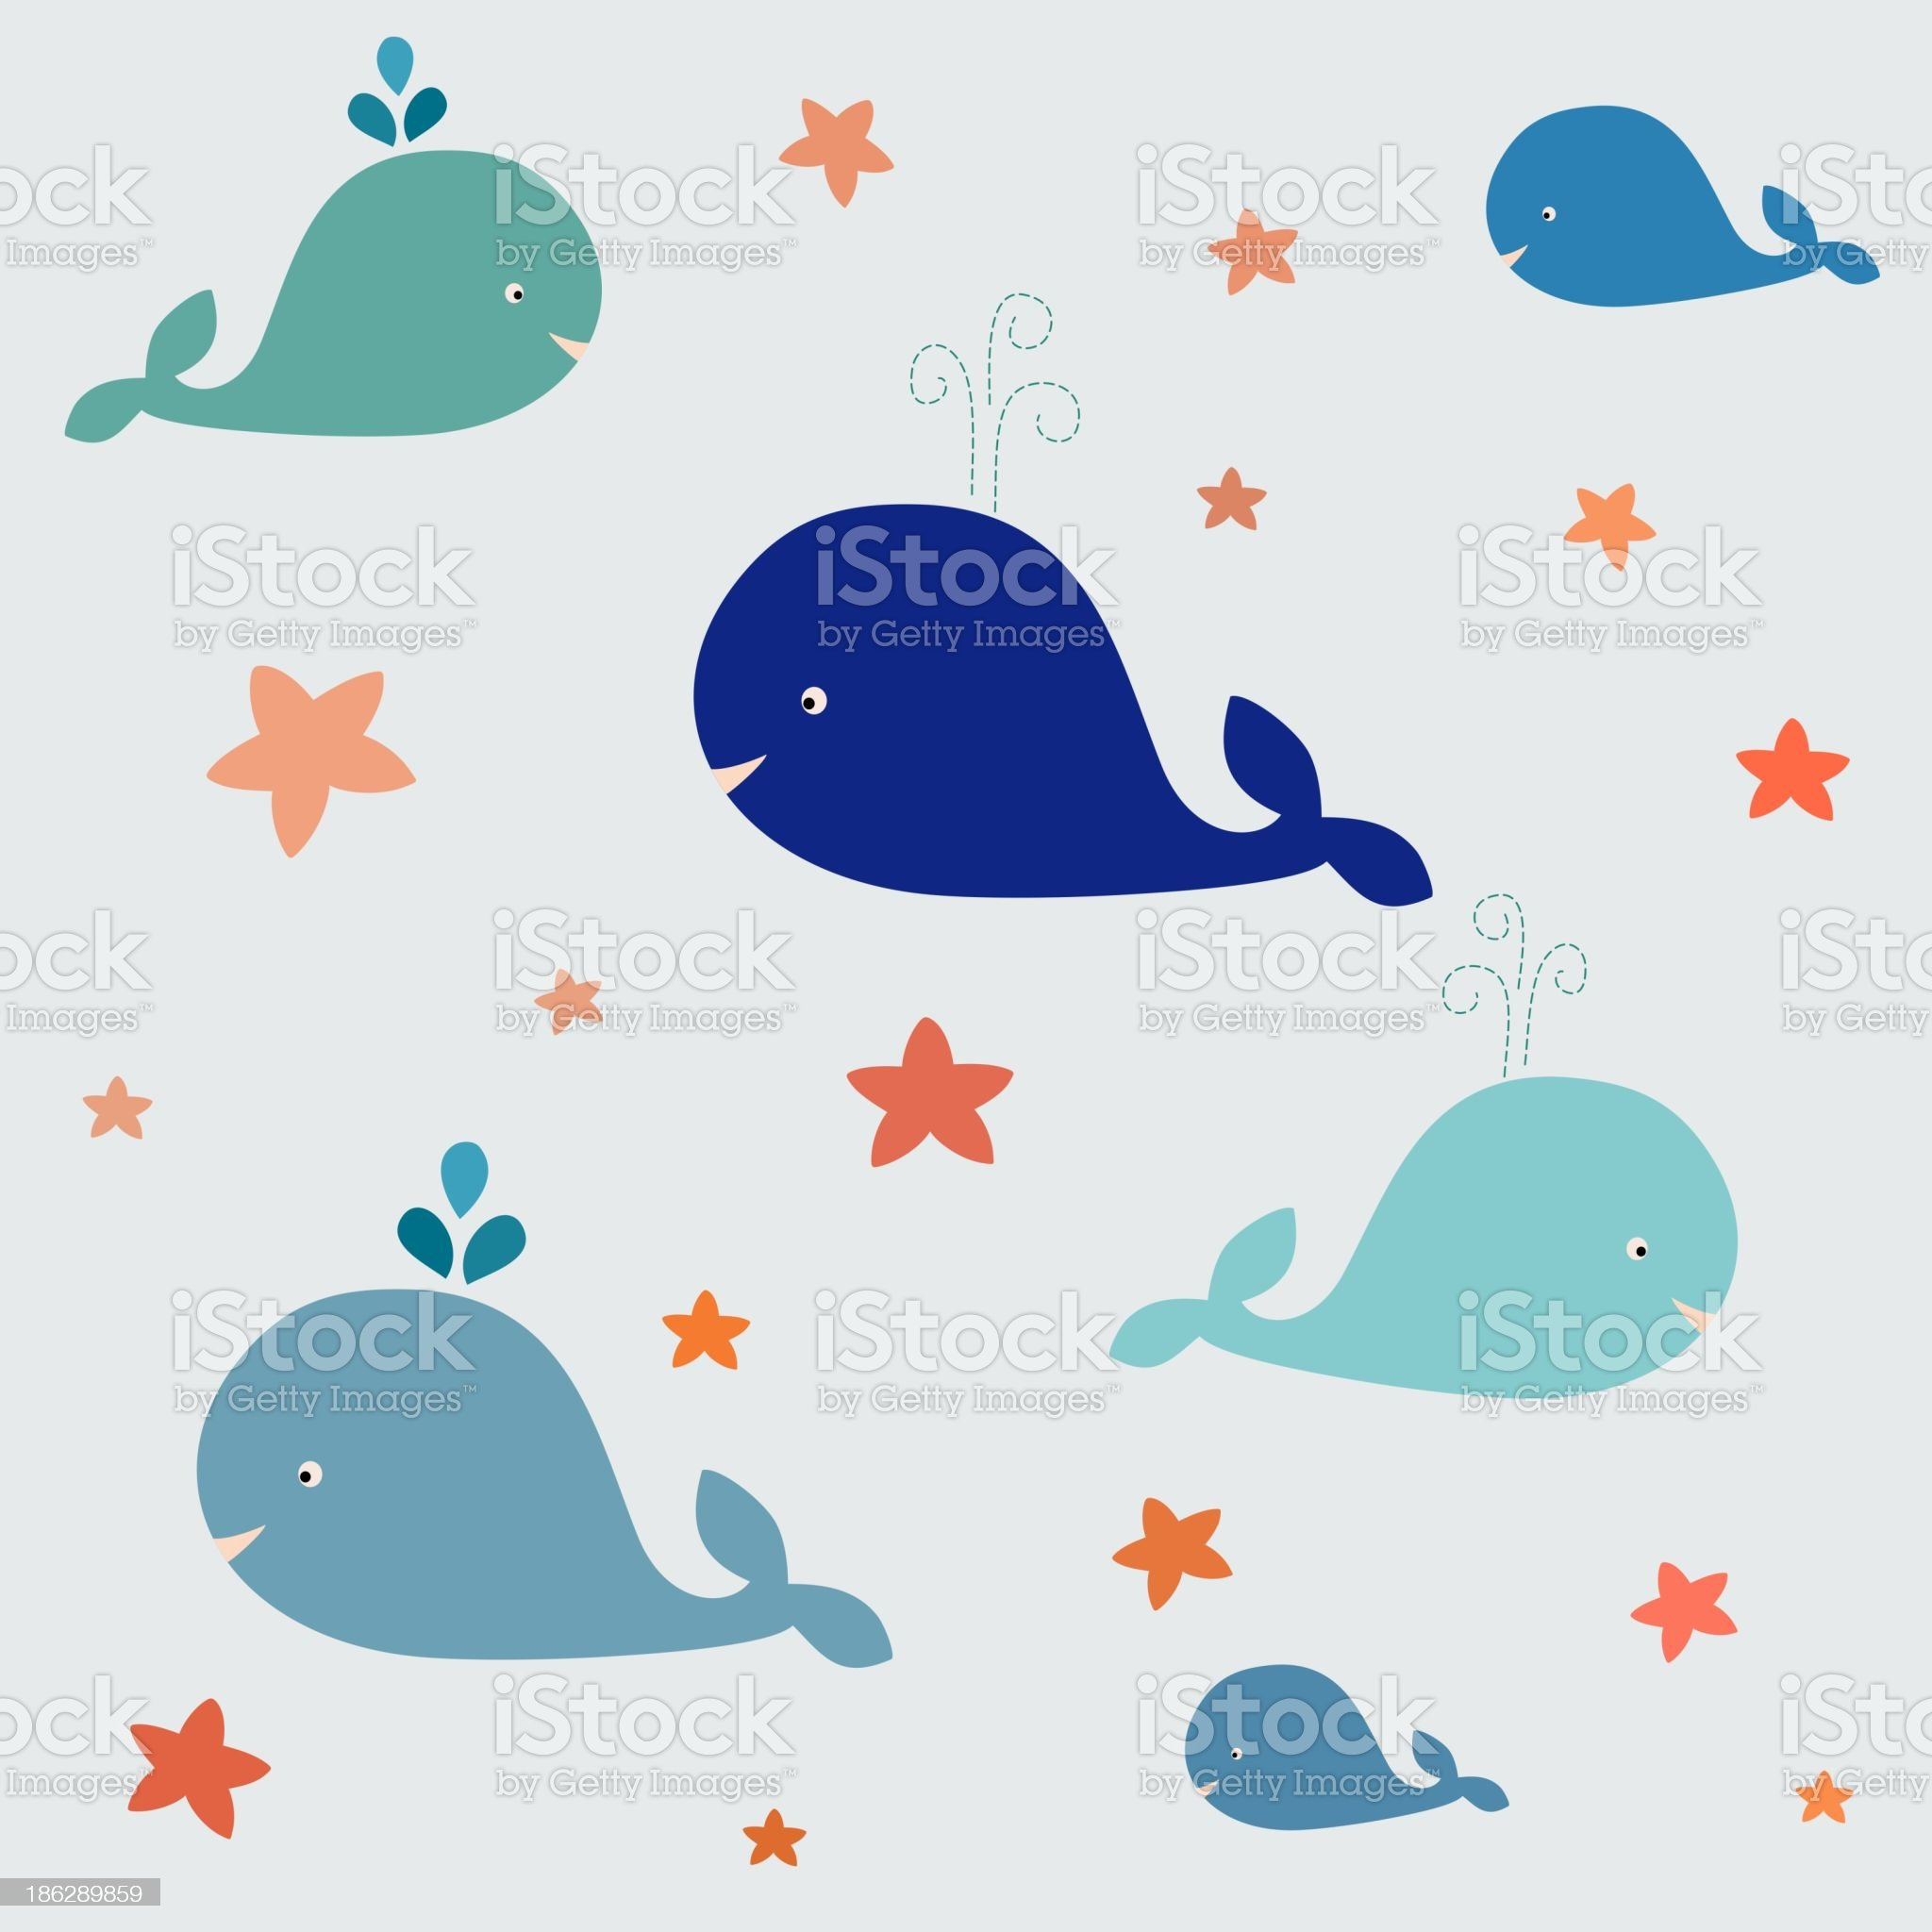 Blue whales with sea stars in vector royalty-free stock vector art